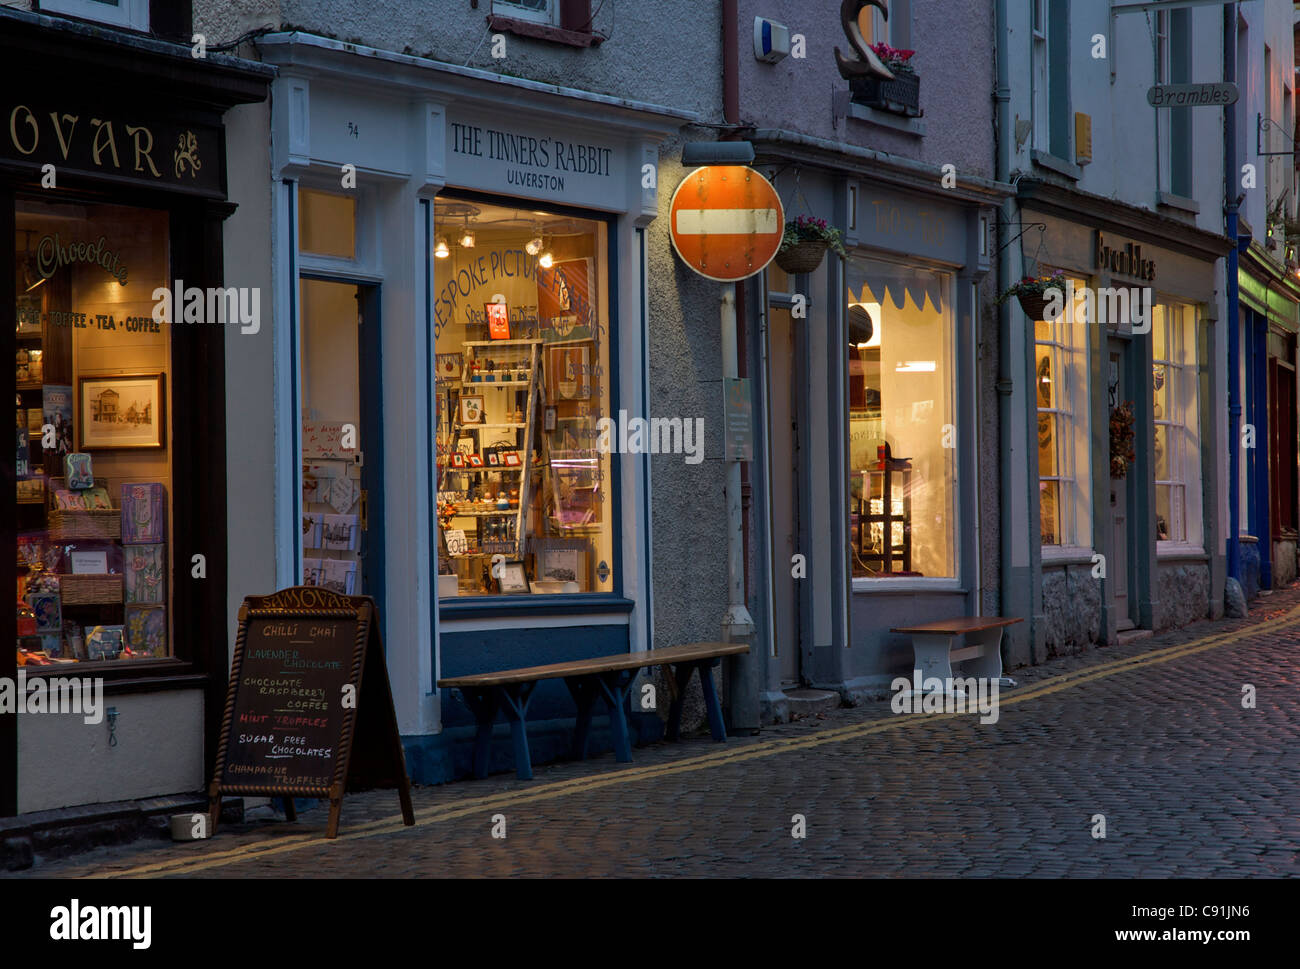 Small independent shops in Market Street, Ulverston, Cumbria, England UK - Stock Image